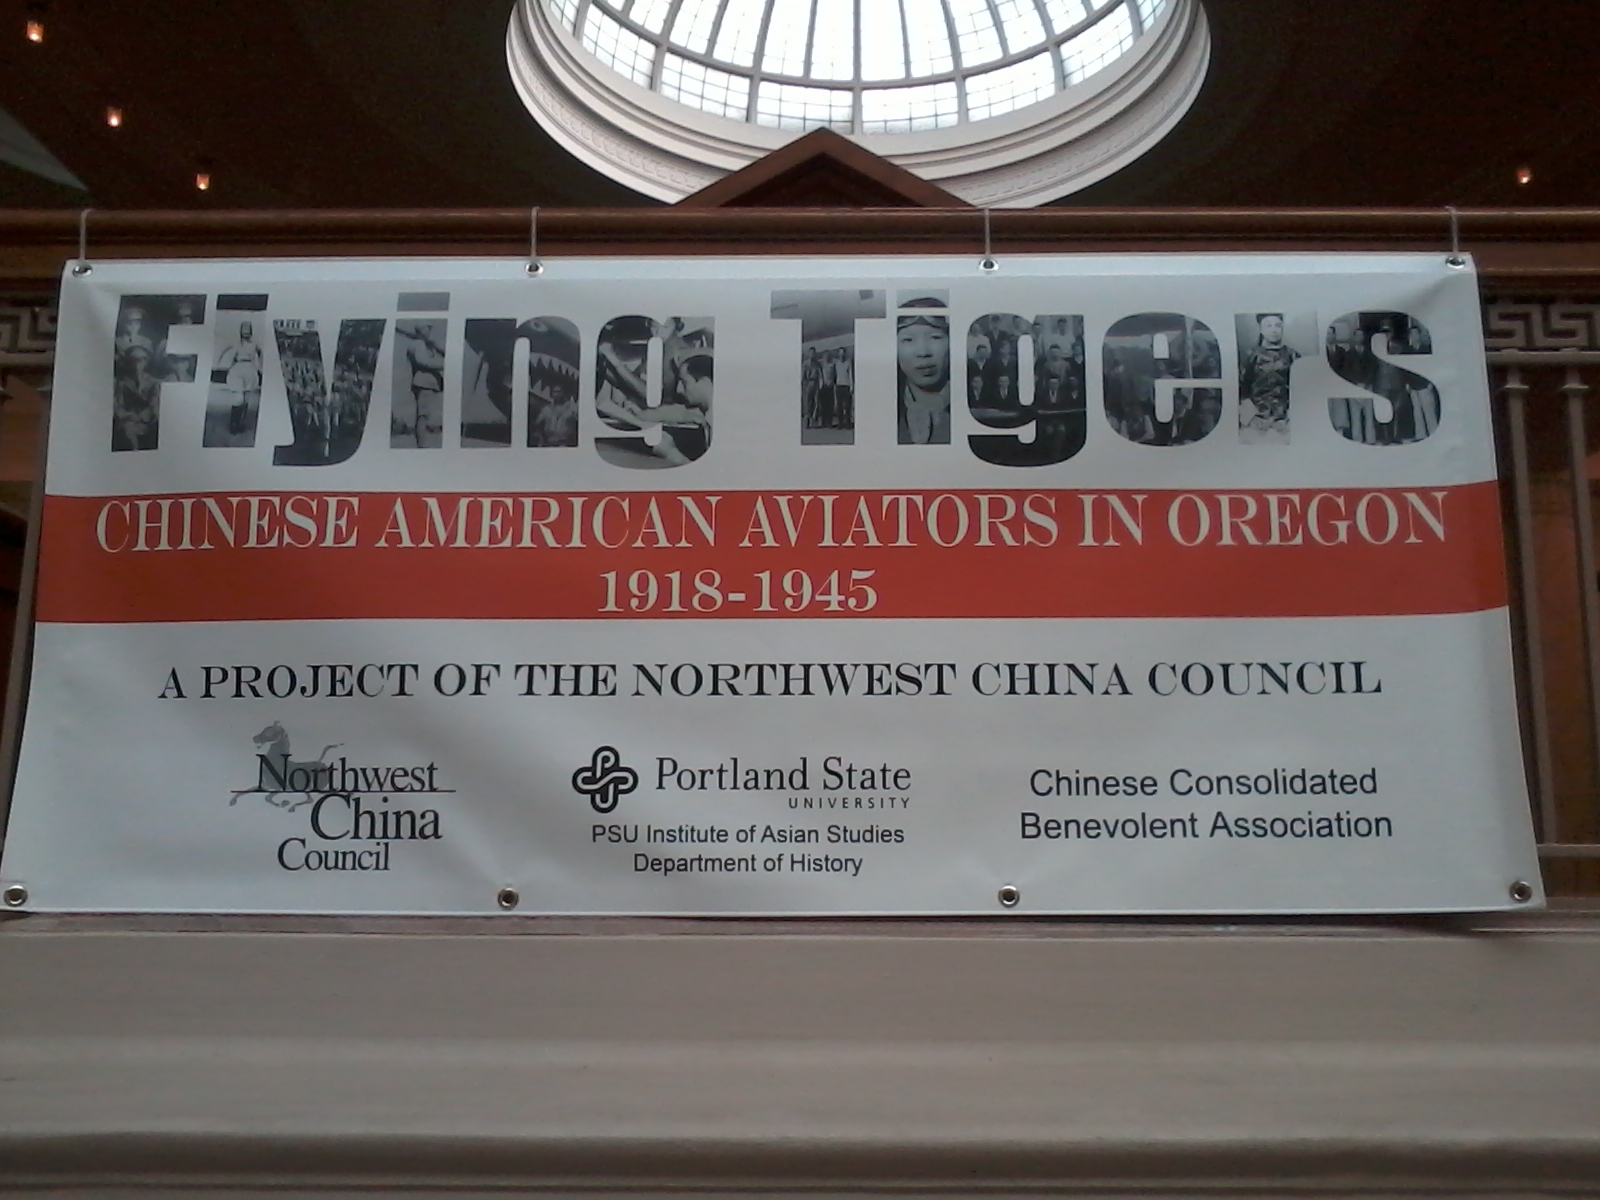 Flying Tigers: Chinese American Aviators in Oregon, 1918-1945